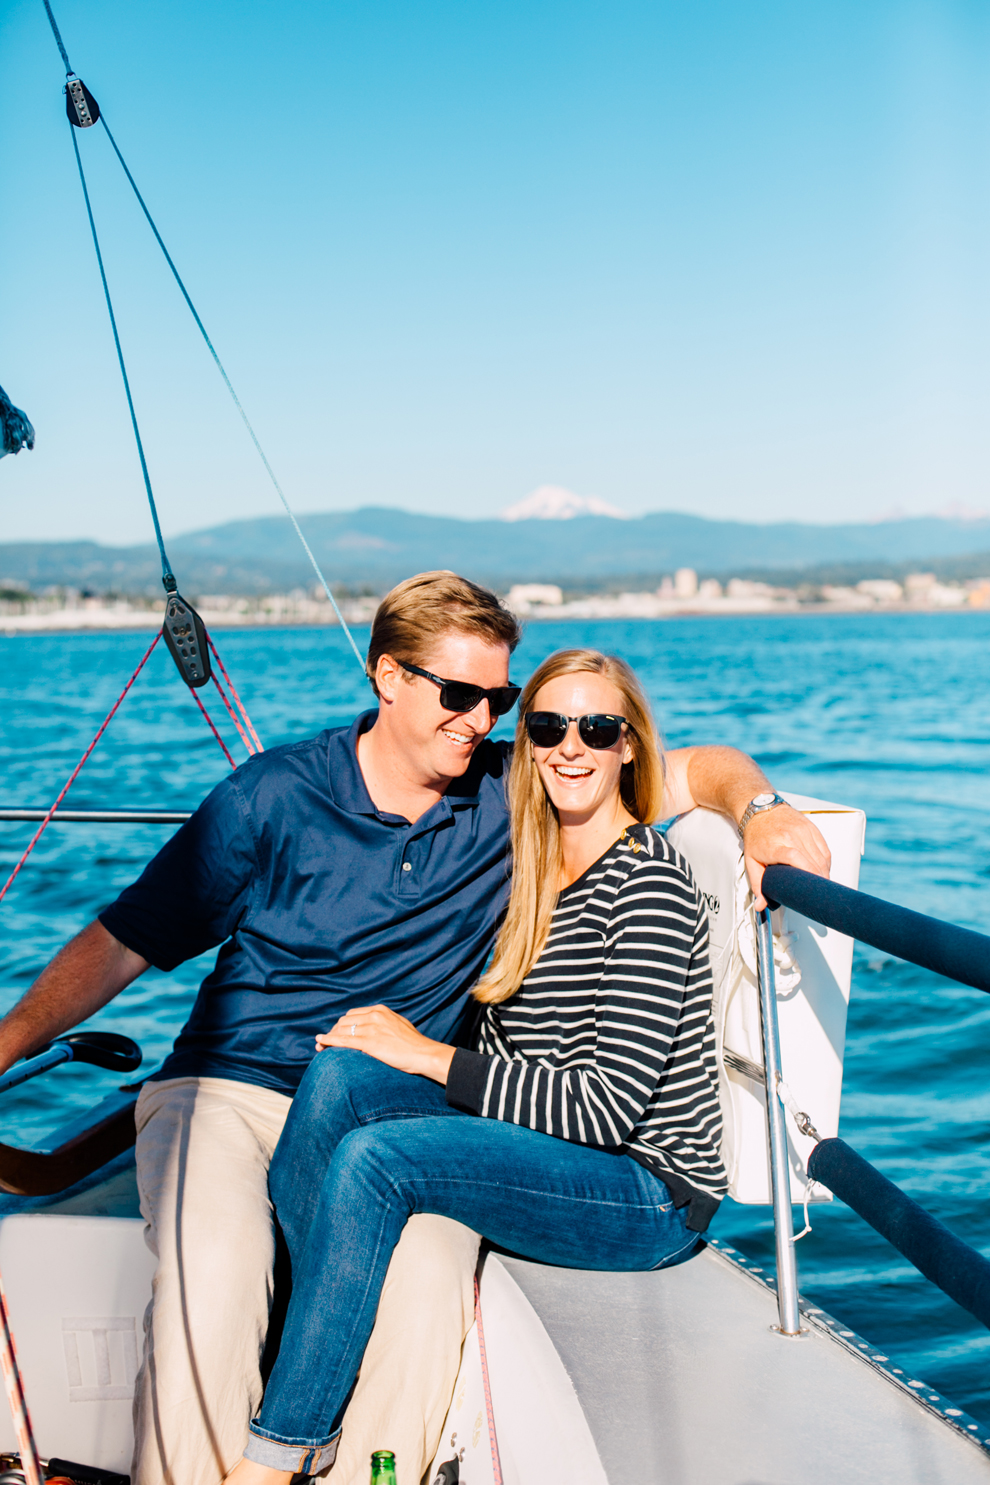 027-bellingham-bay-washington-sailboat-engagement-katheryn-moran-mickeykatie.jpg